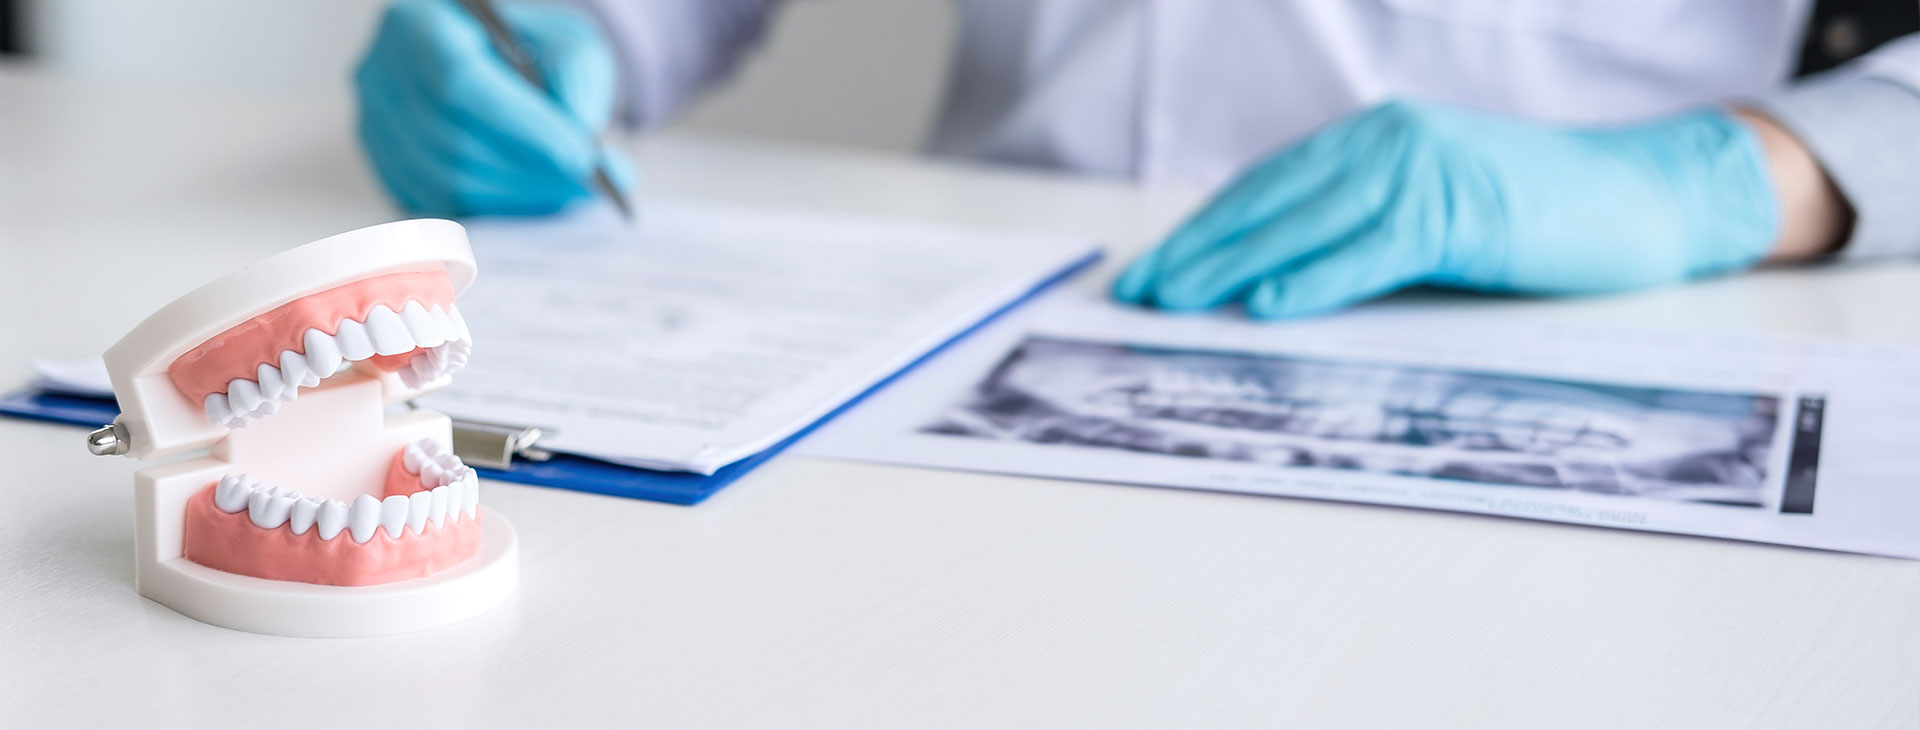 Doctor writing a report with a dental x-ray on the table